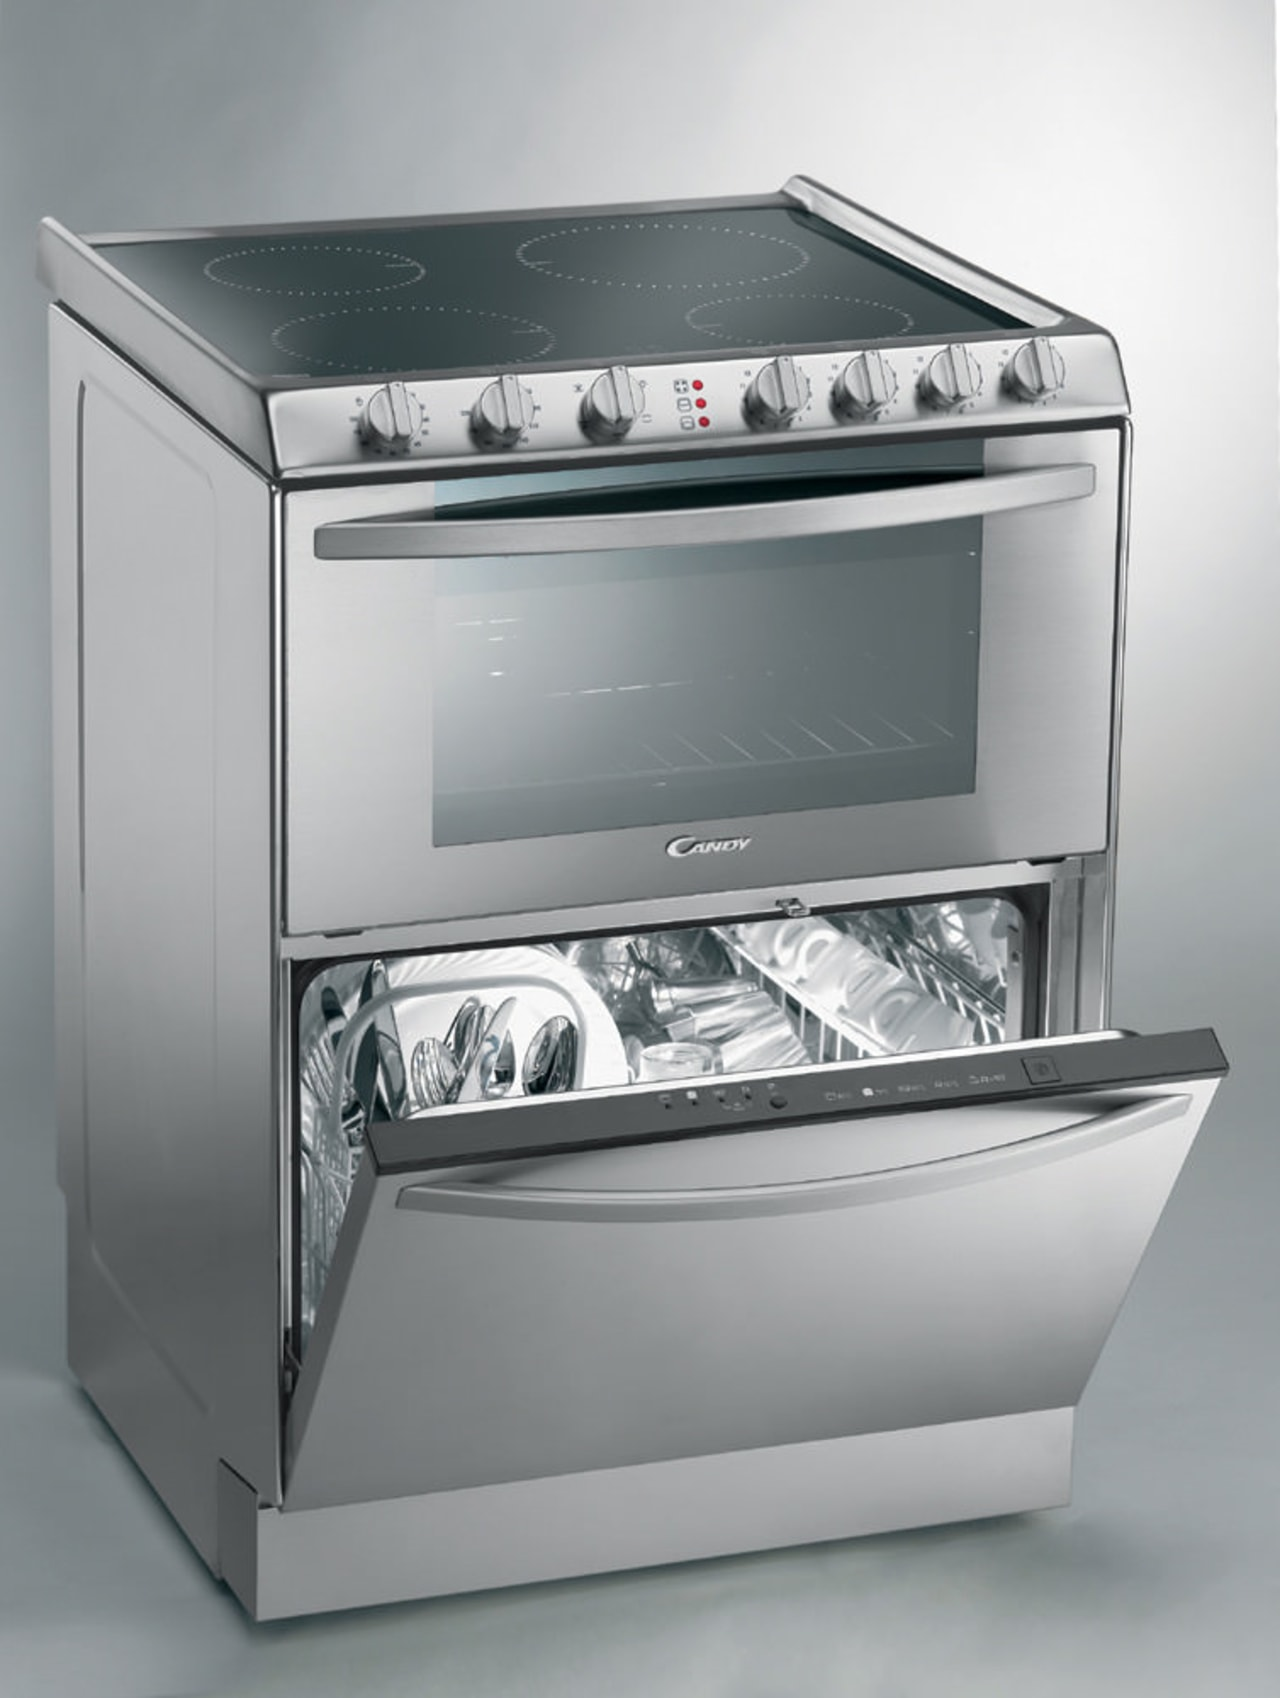 Dom Tech Australia imports the Candy 3 in gas stove, home appliance, kitchen appliance, kitchen stove, major appliance, oven, product, product design, small appliance, gray